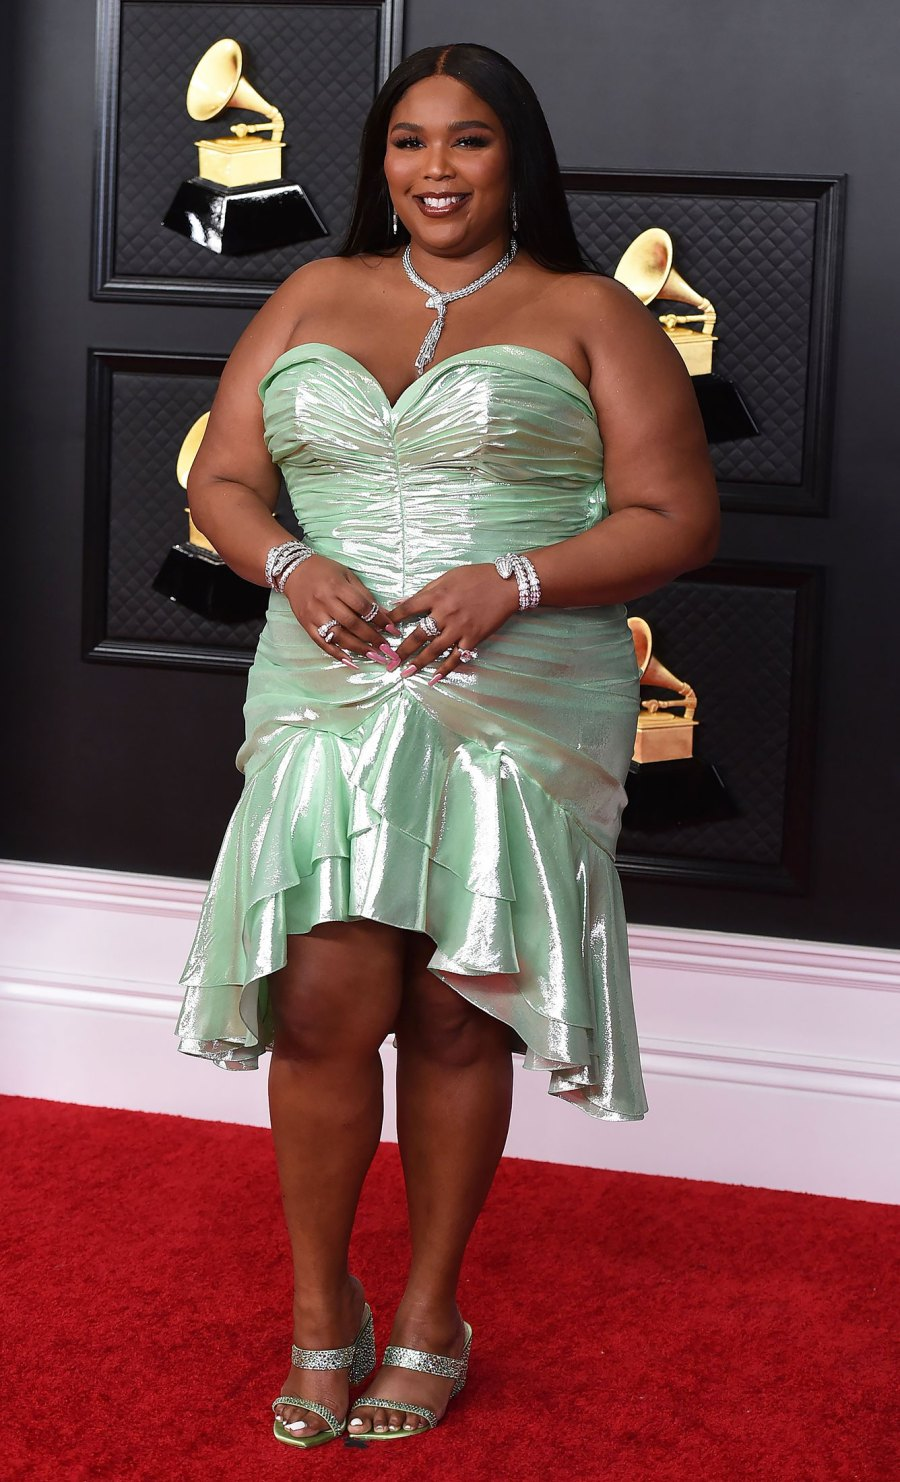 2021 Grammy Awards Red Carpet Arrivals - Lizzo